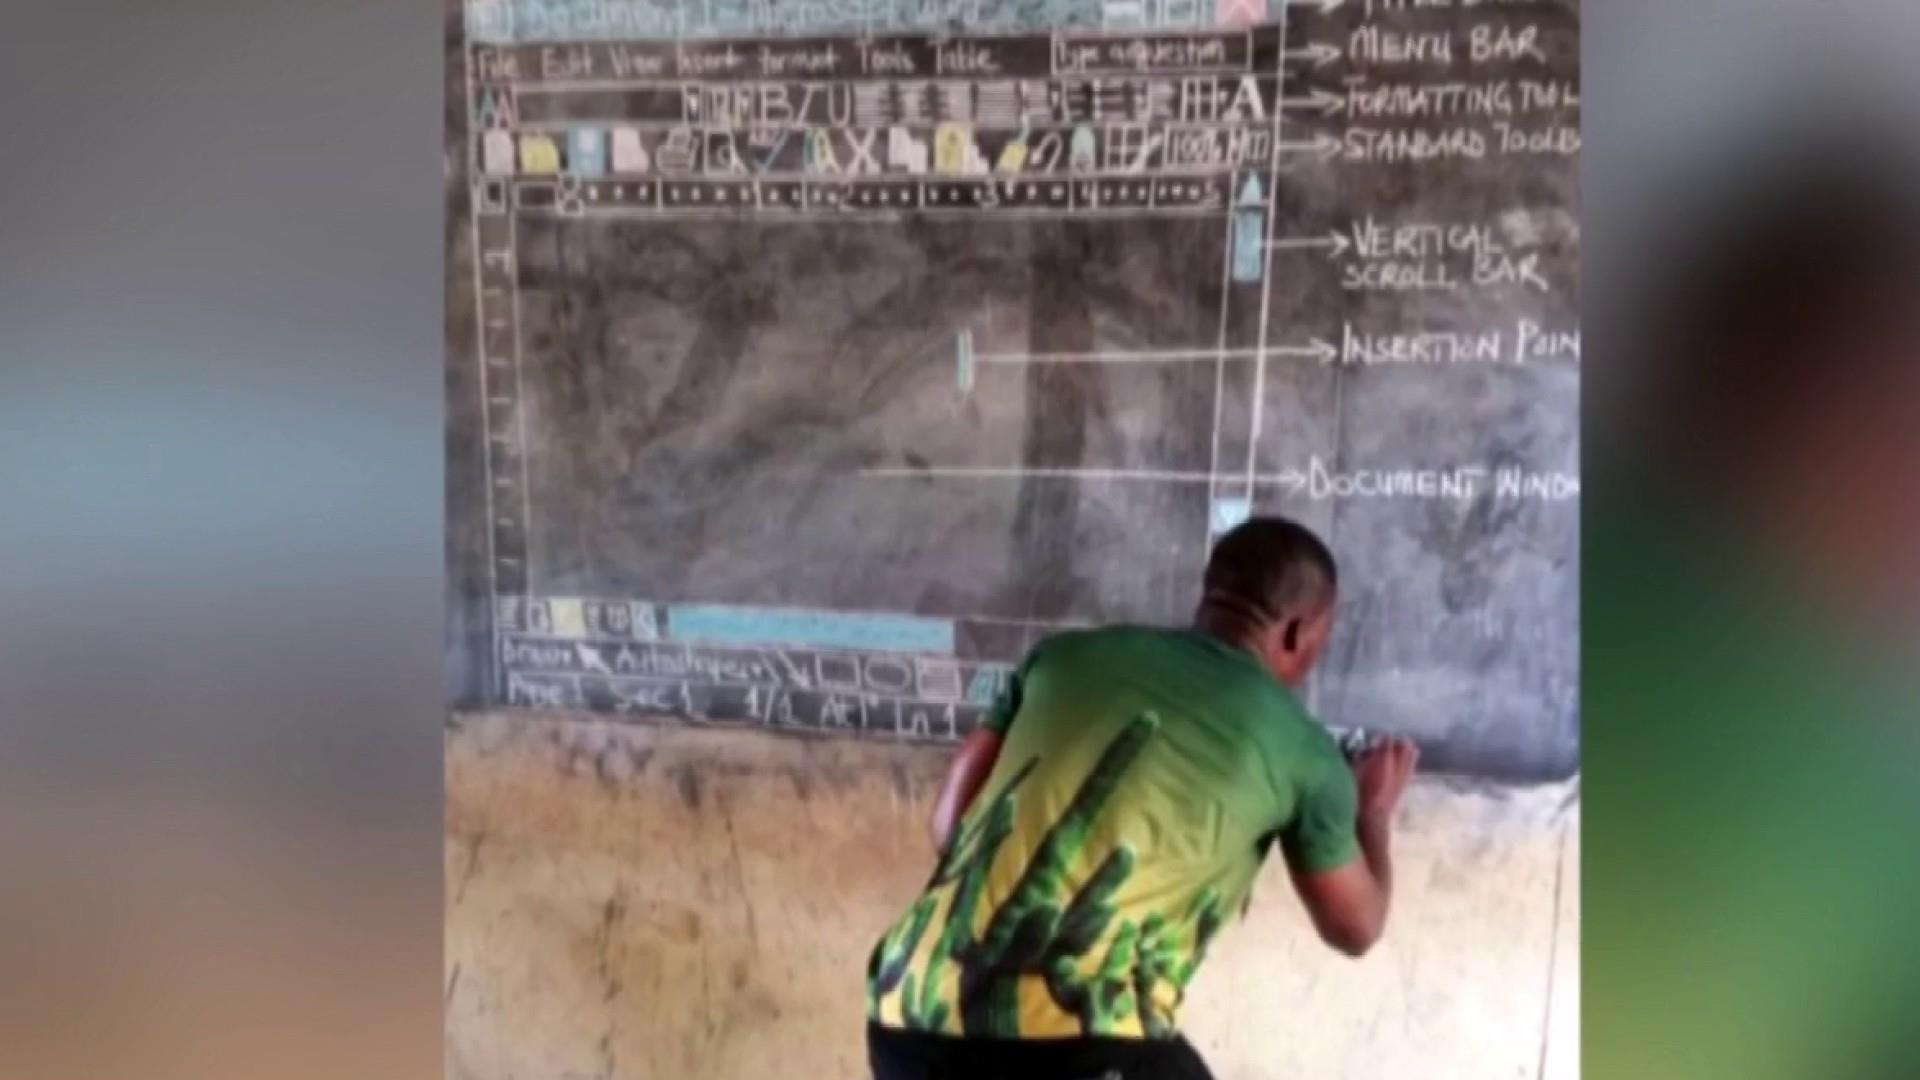 #GoodNewsRuhles: Ghana teacher taught students about Microsoft word without a computer